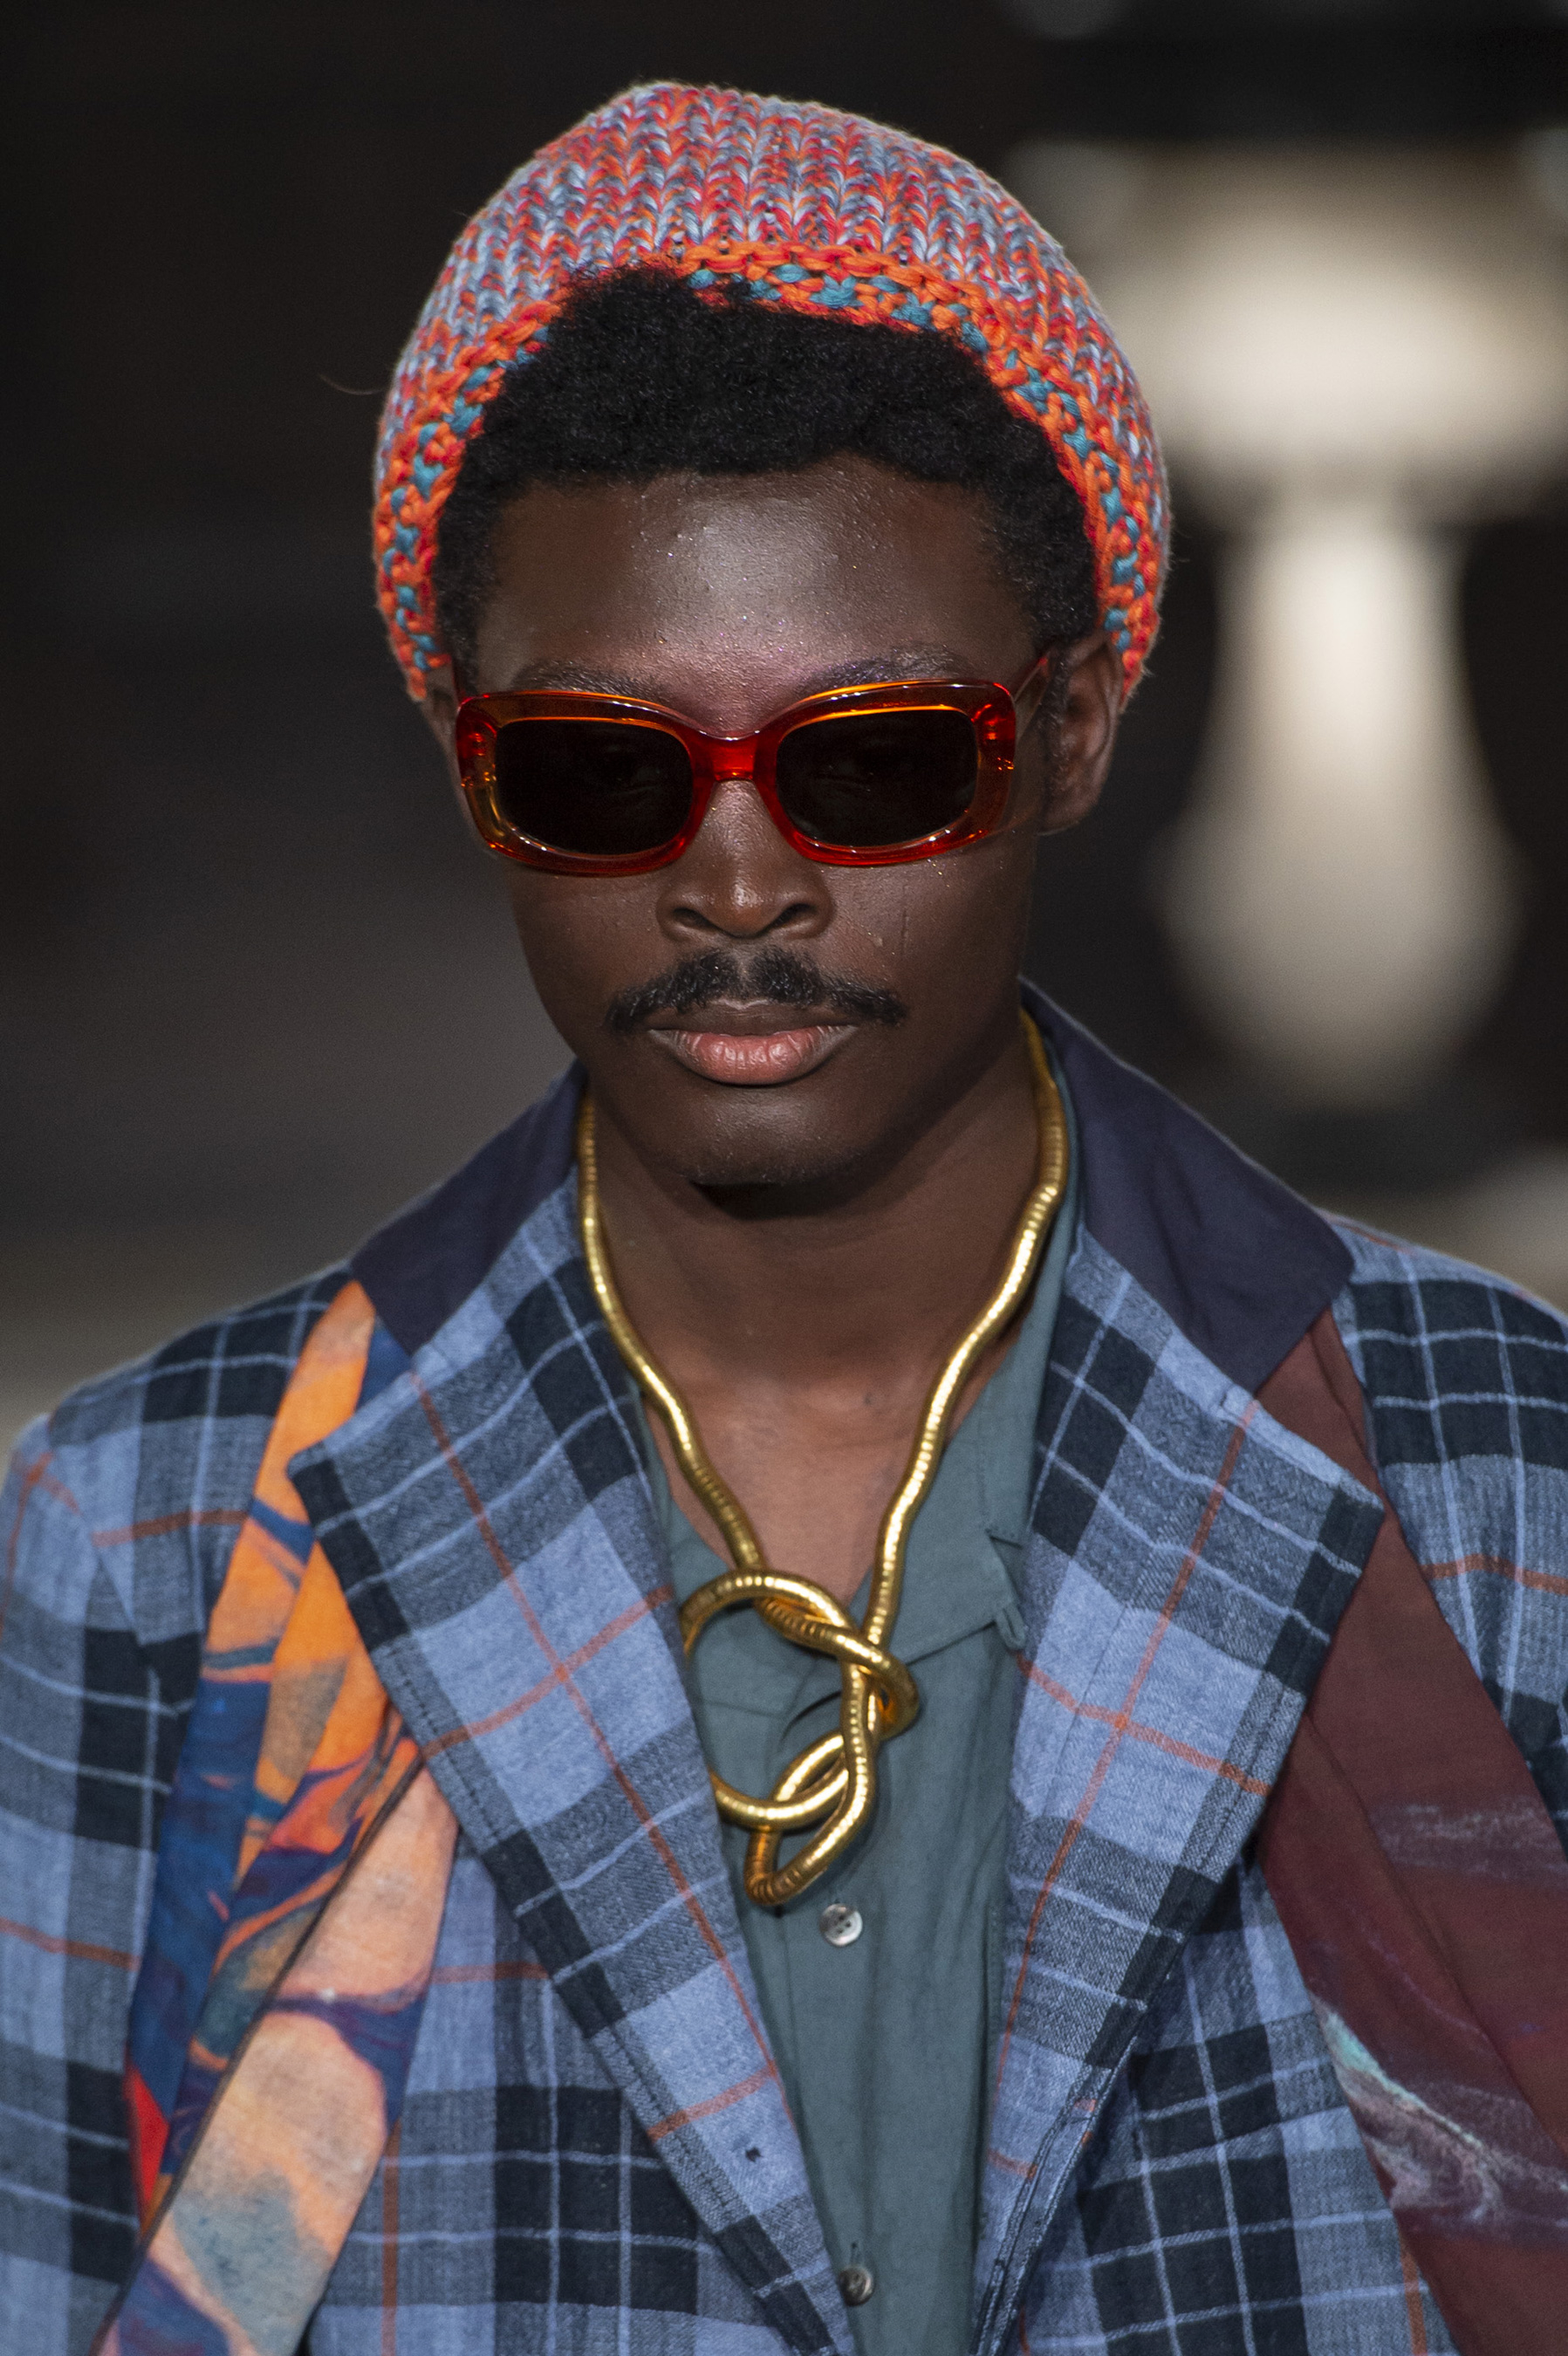 Nicholas Daley Spring 2020 Men's Fashion Show Details